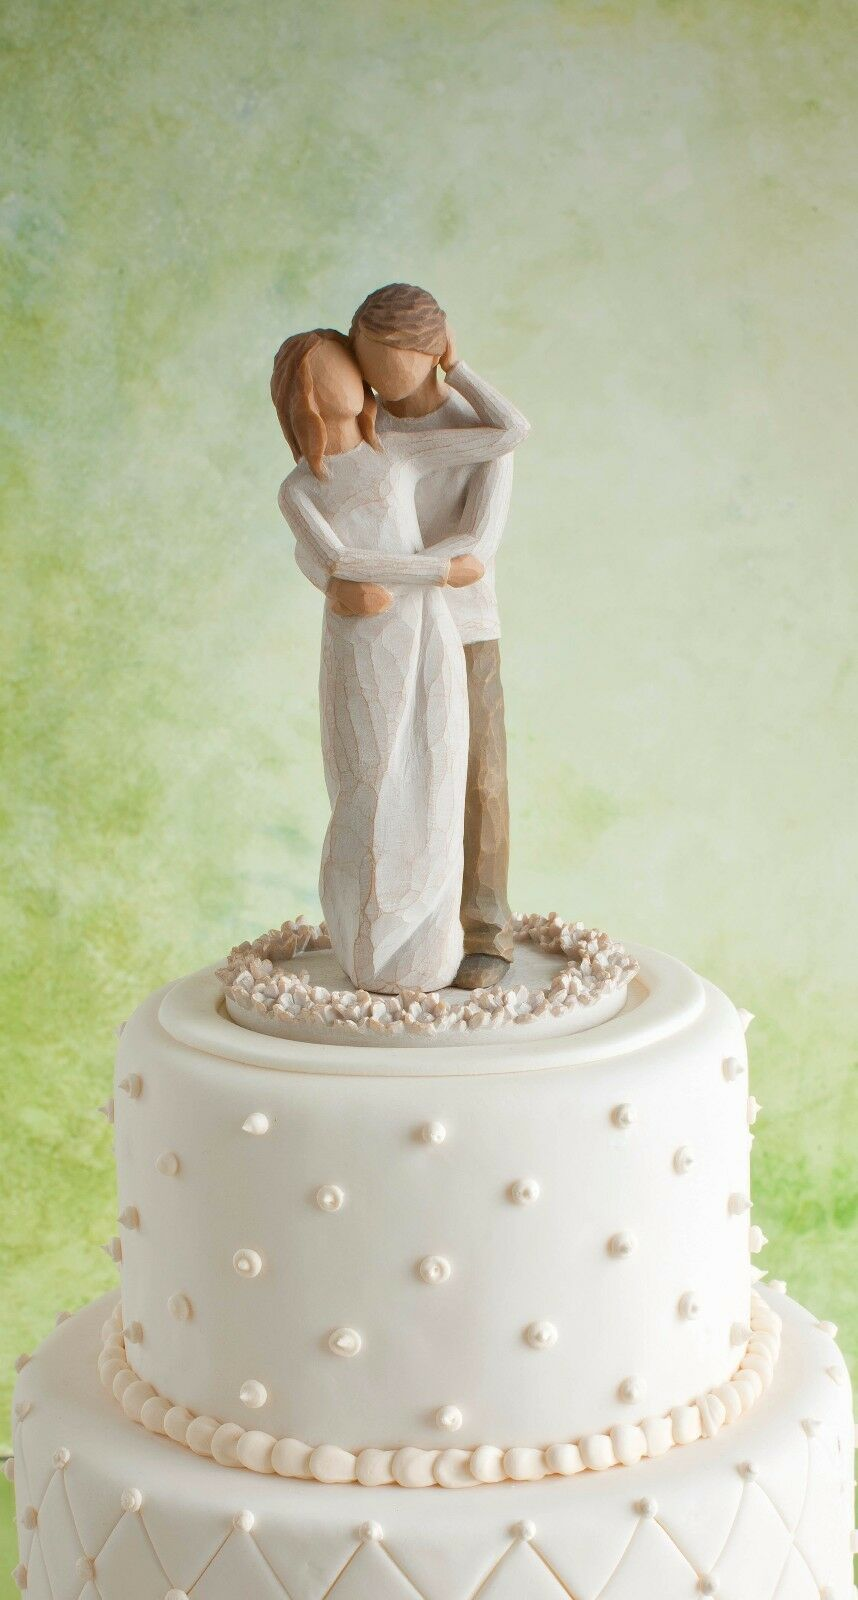 Willow Tree Susan Lordi Together Cake Topper Hochzeit 27162